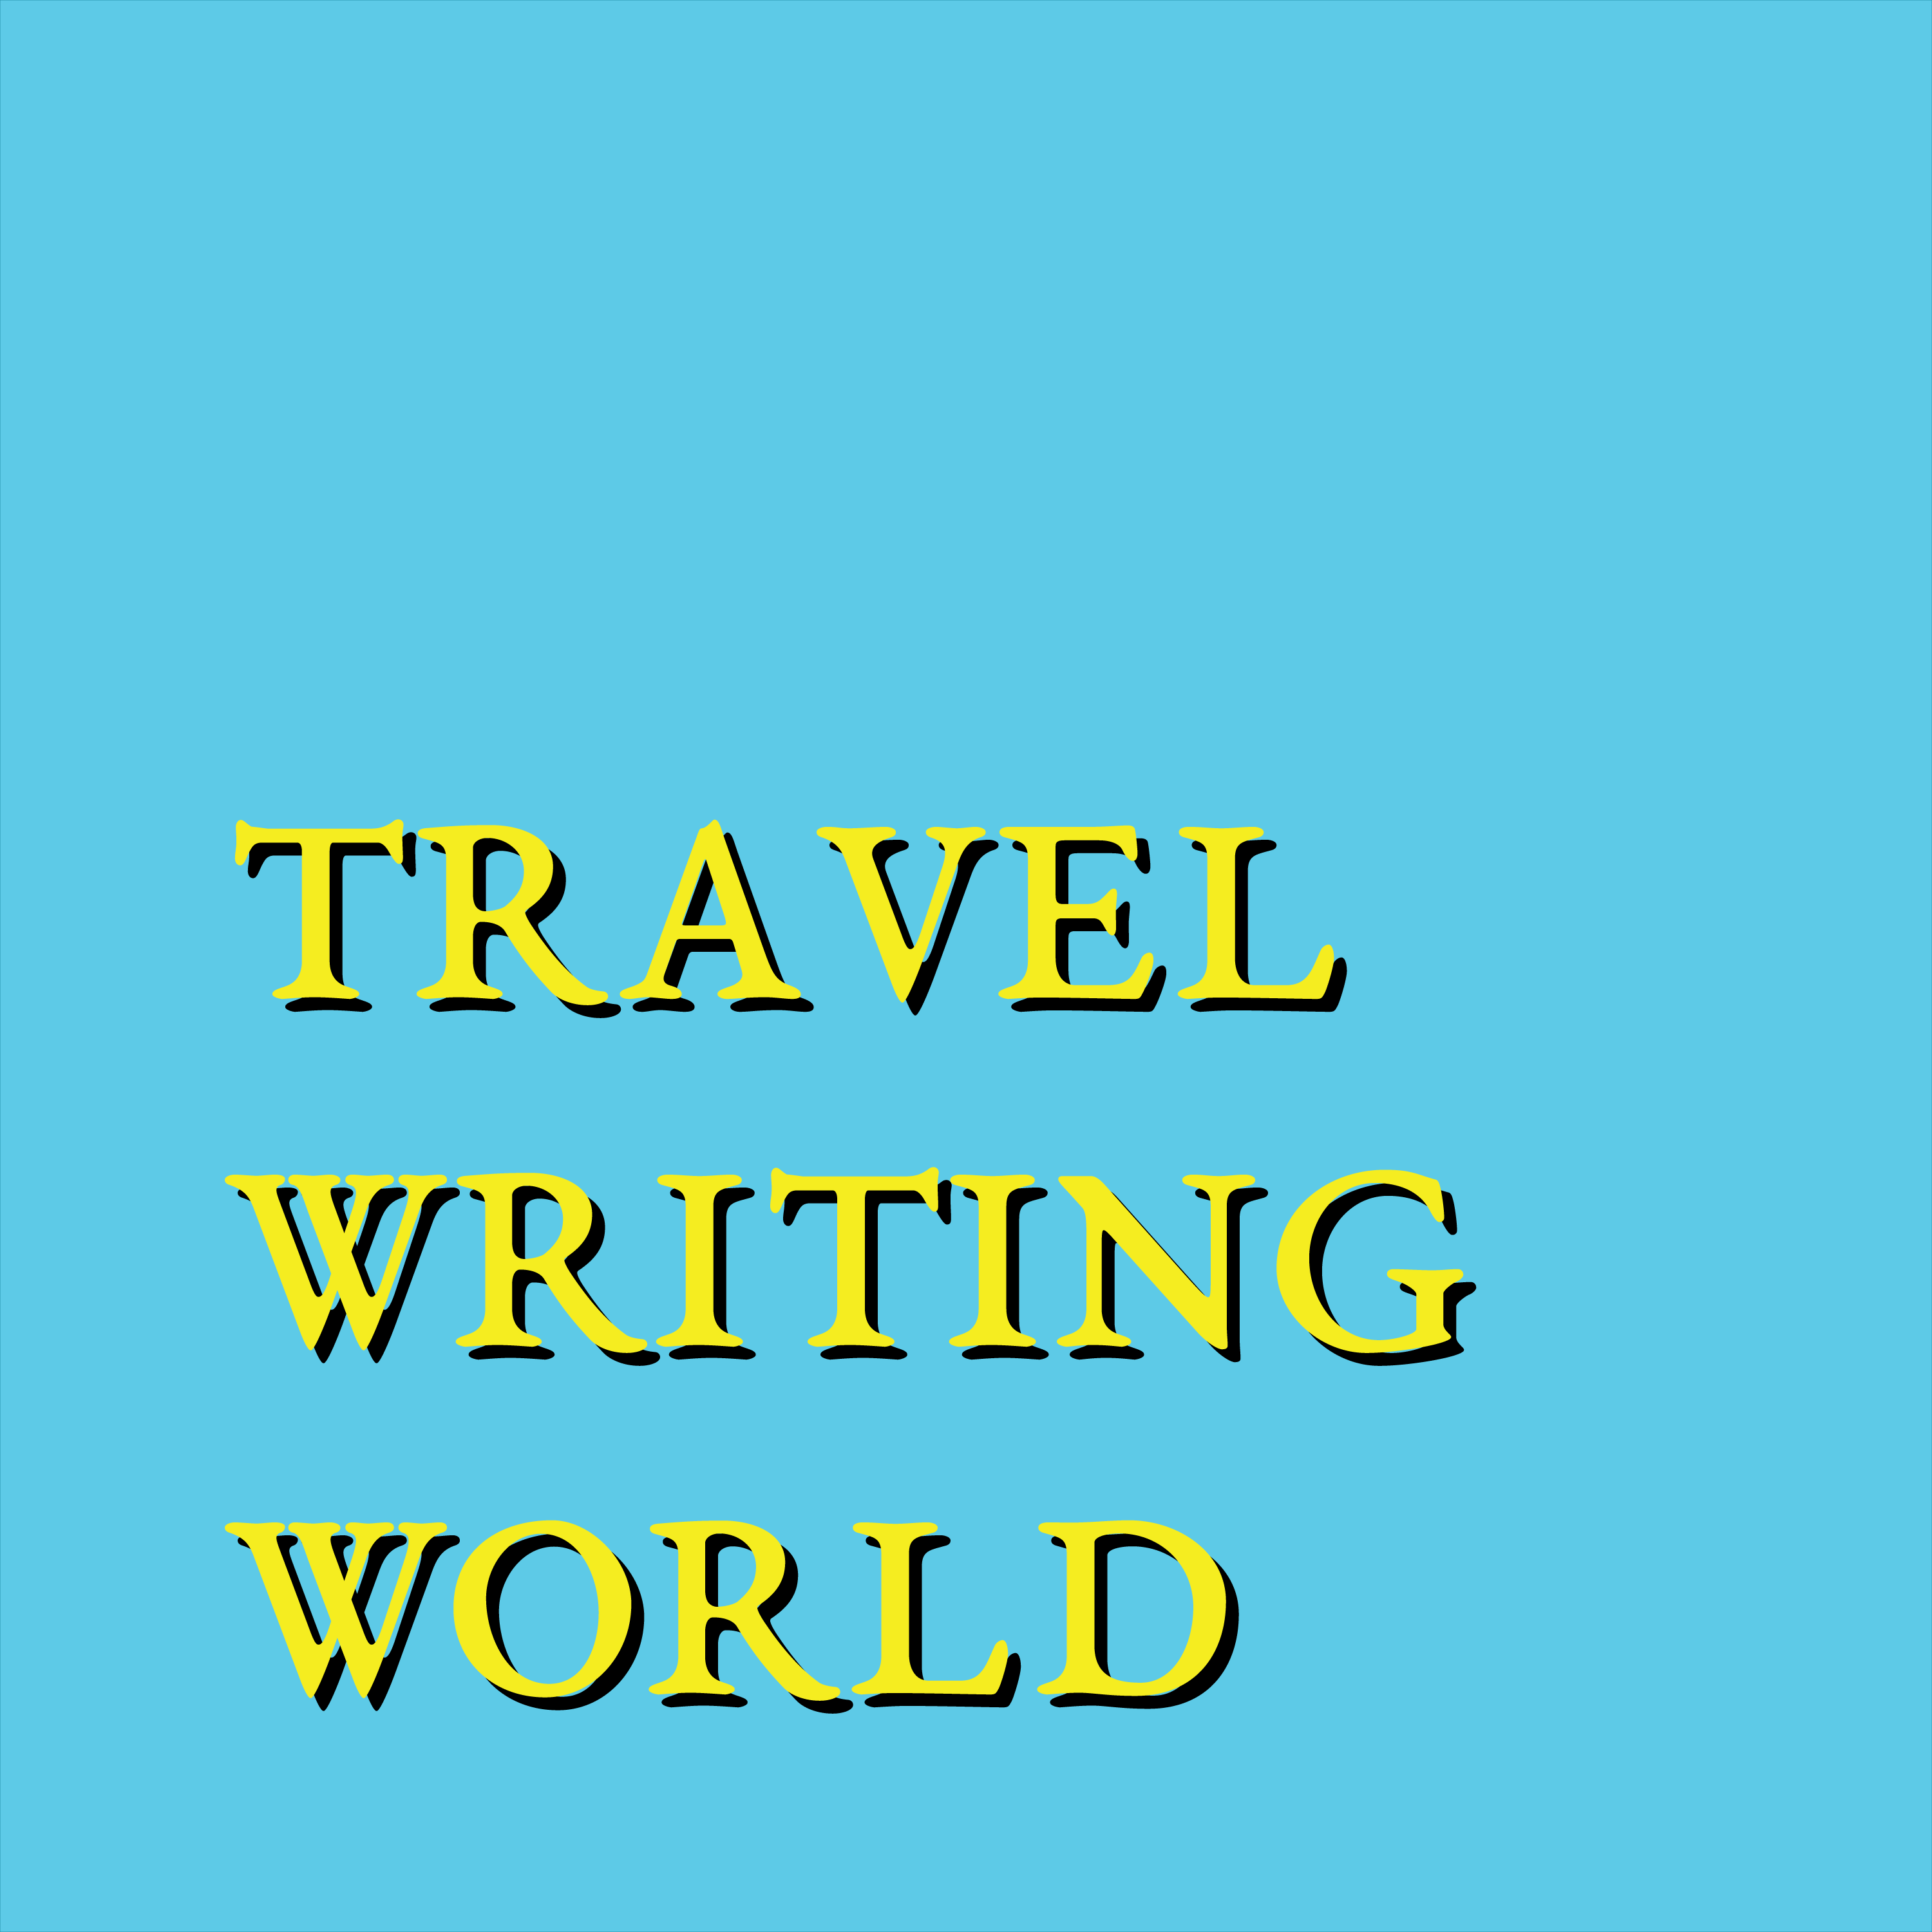 Travel Writing World